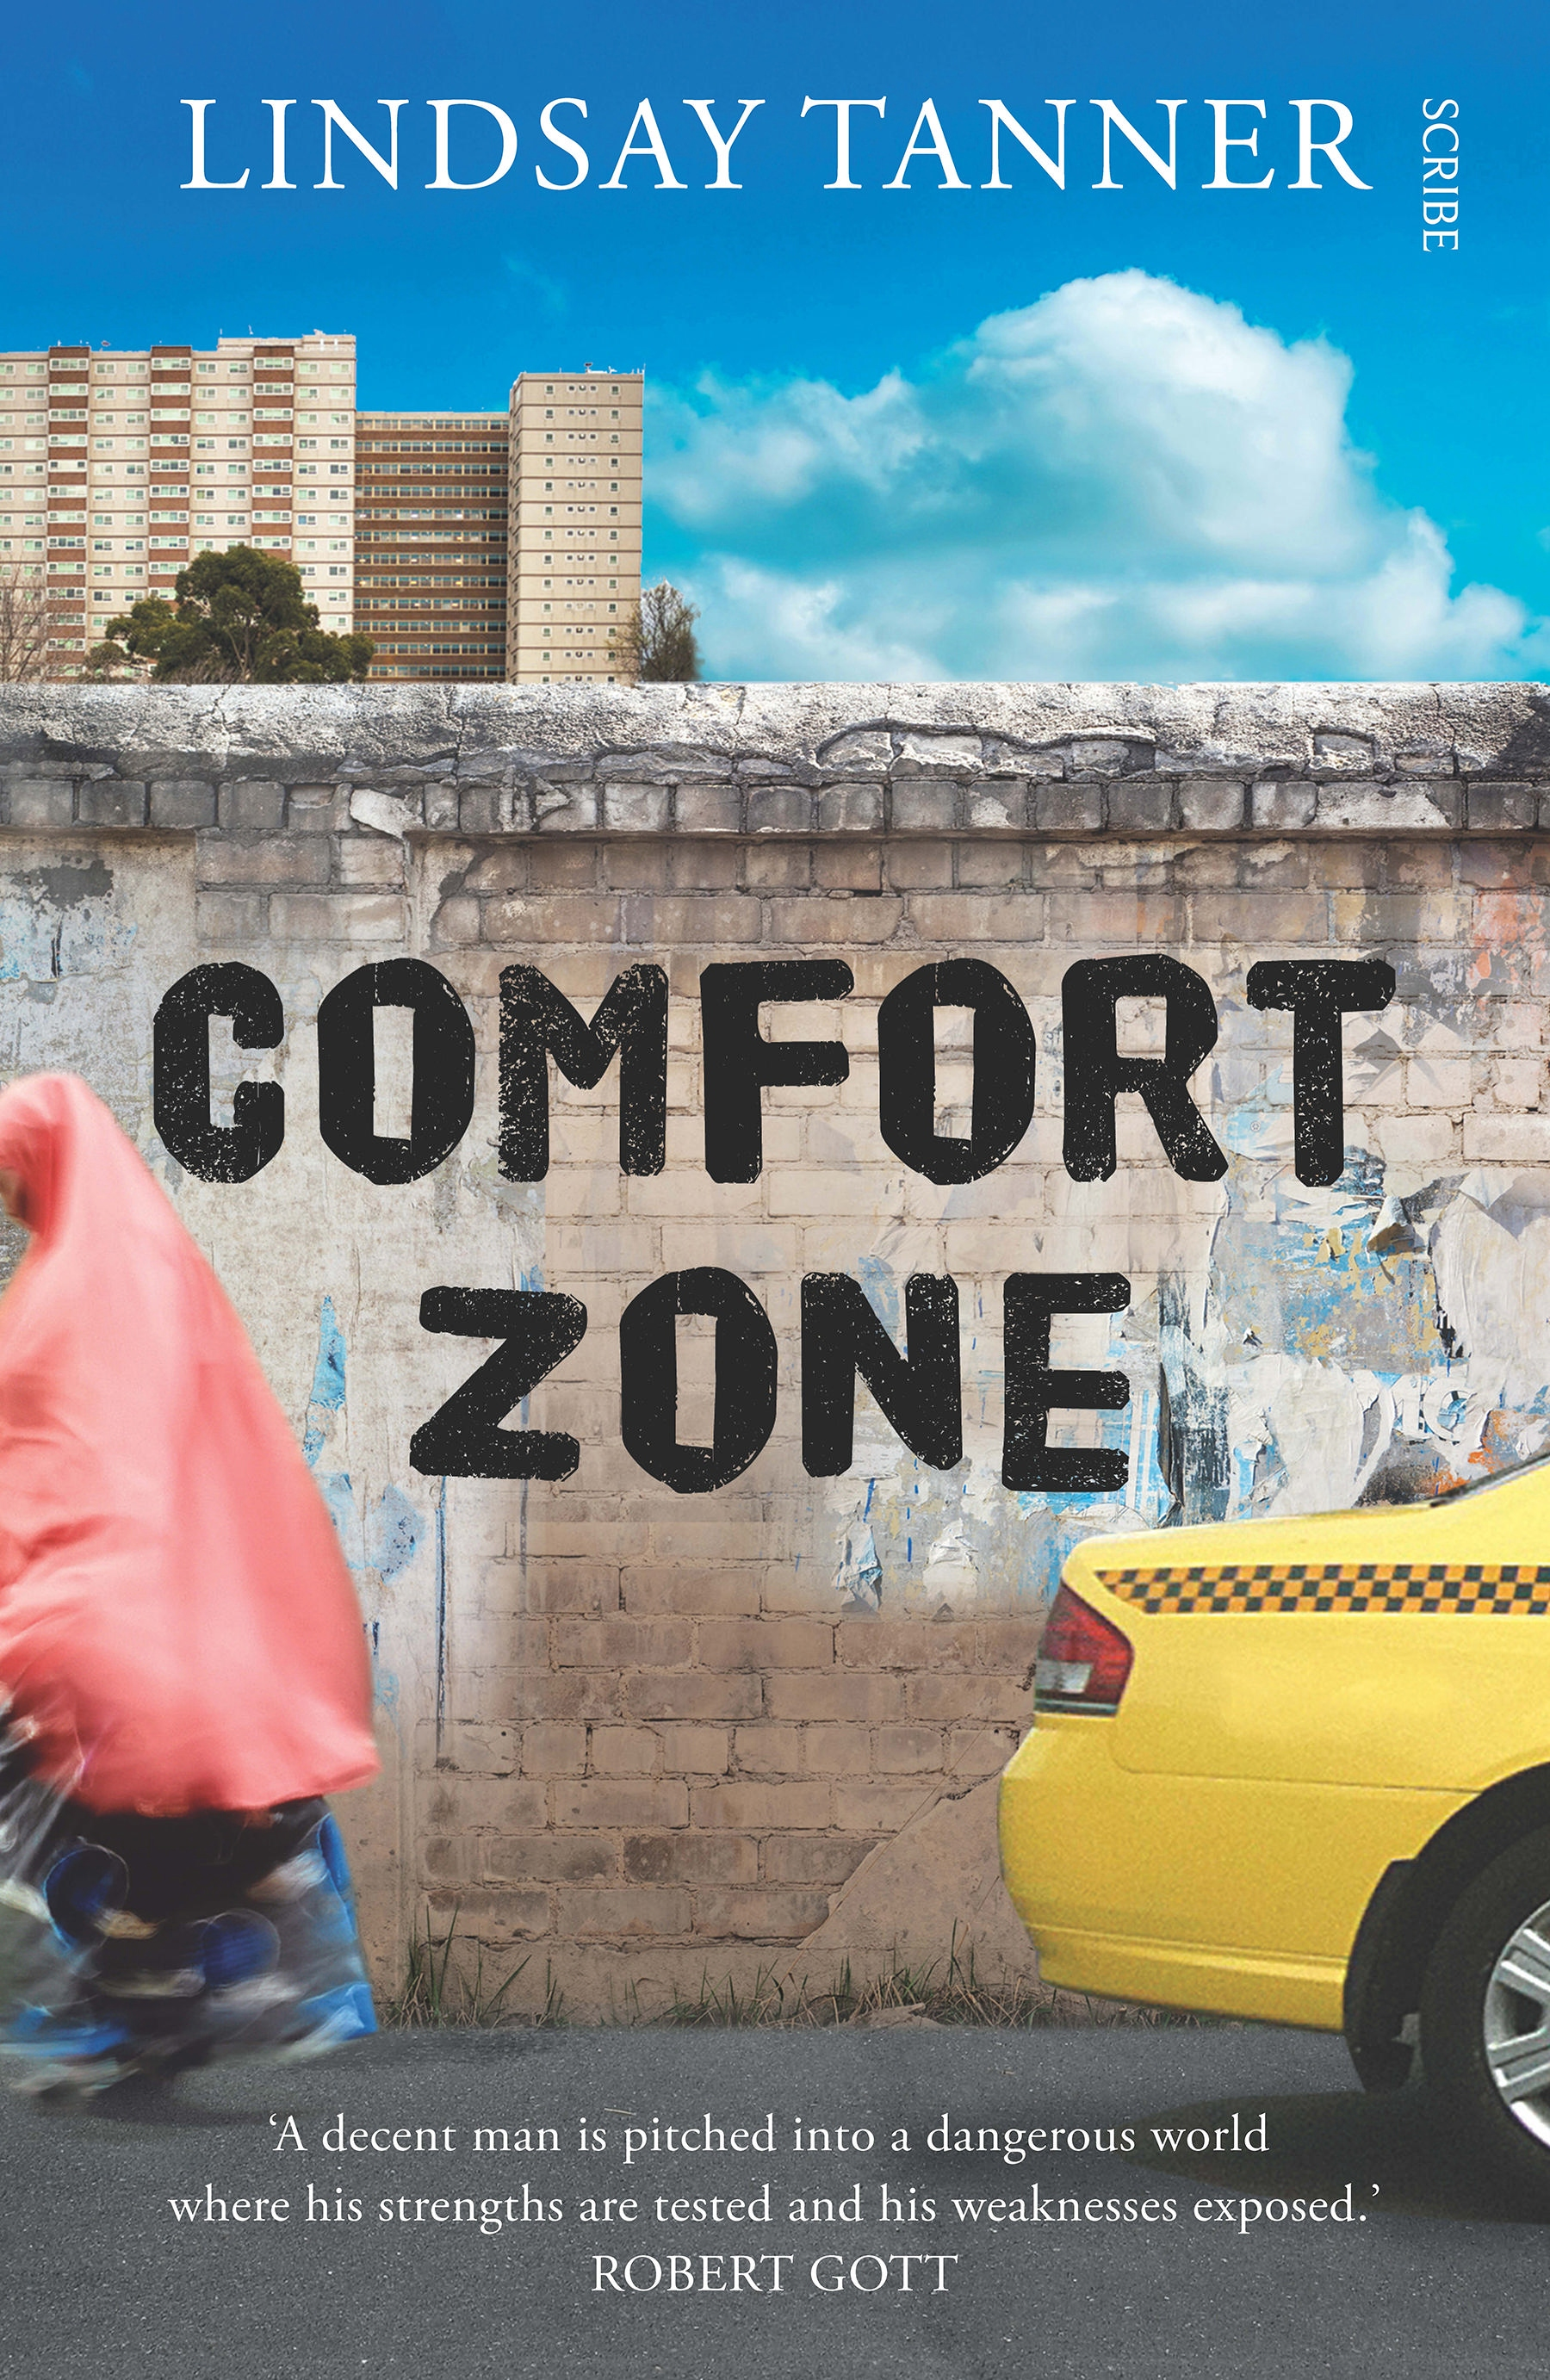 Comfort Zone by Lindsay Tanner, ISBN: 9781925321029